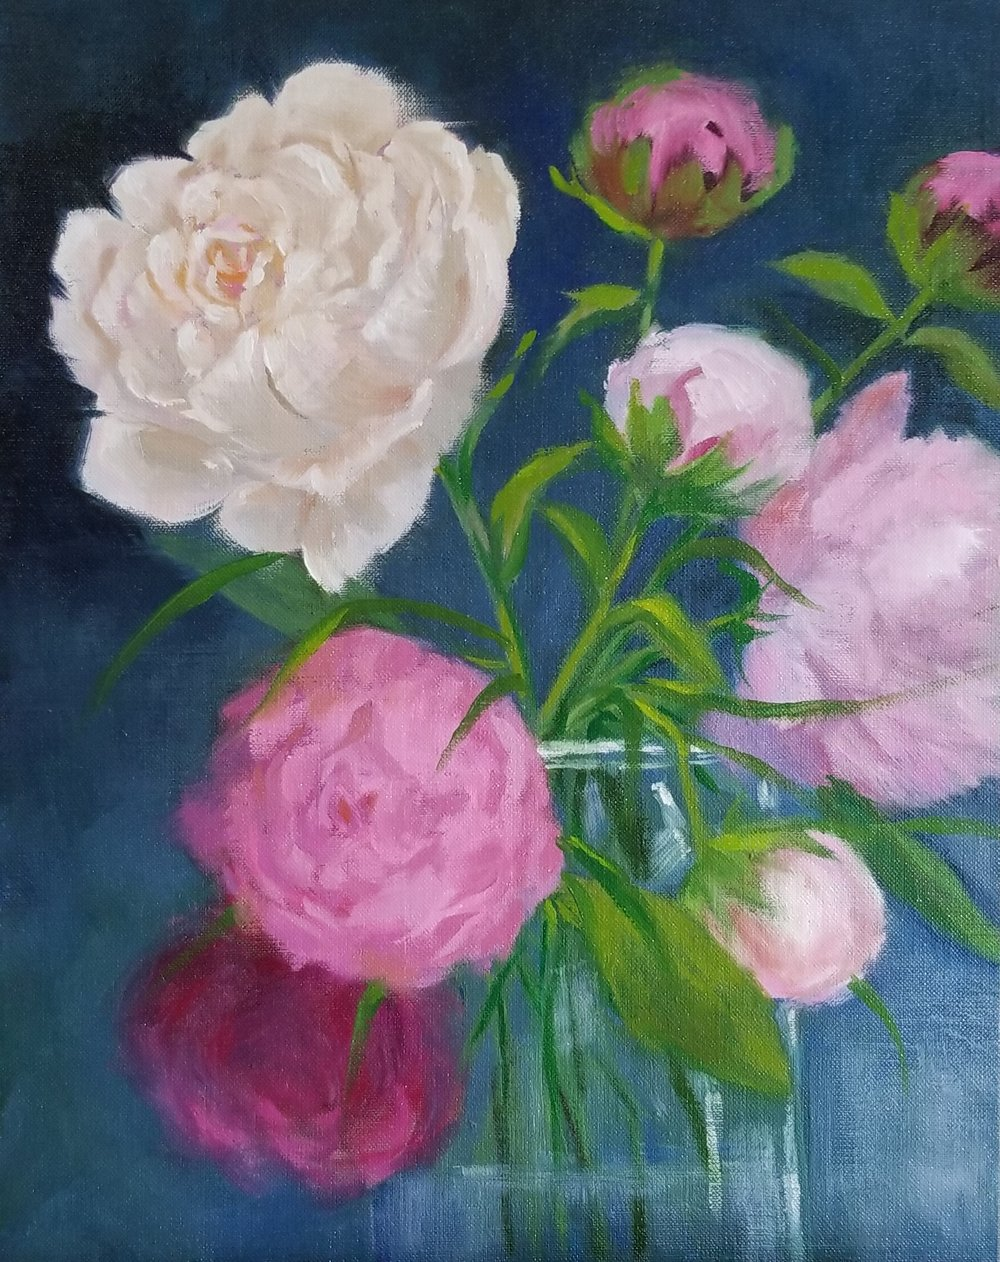 Peonies-oil on linen-14x11-Nancy Boyle.jpg